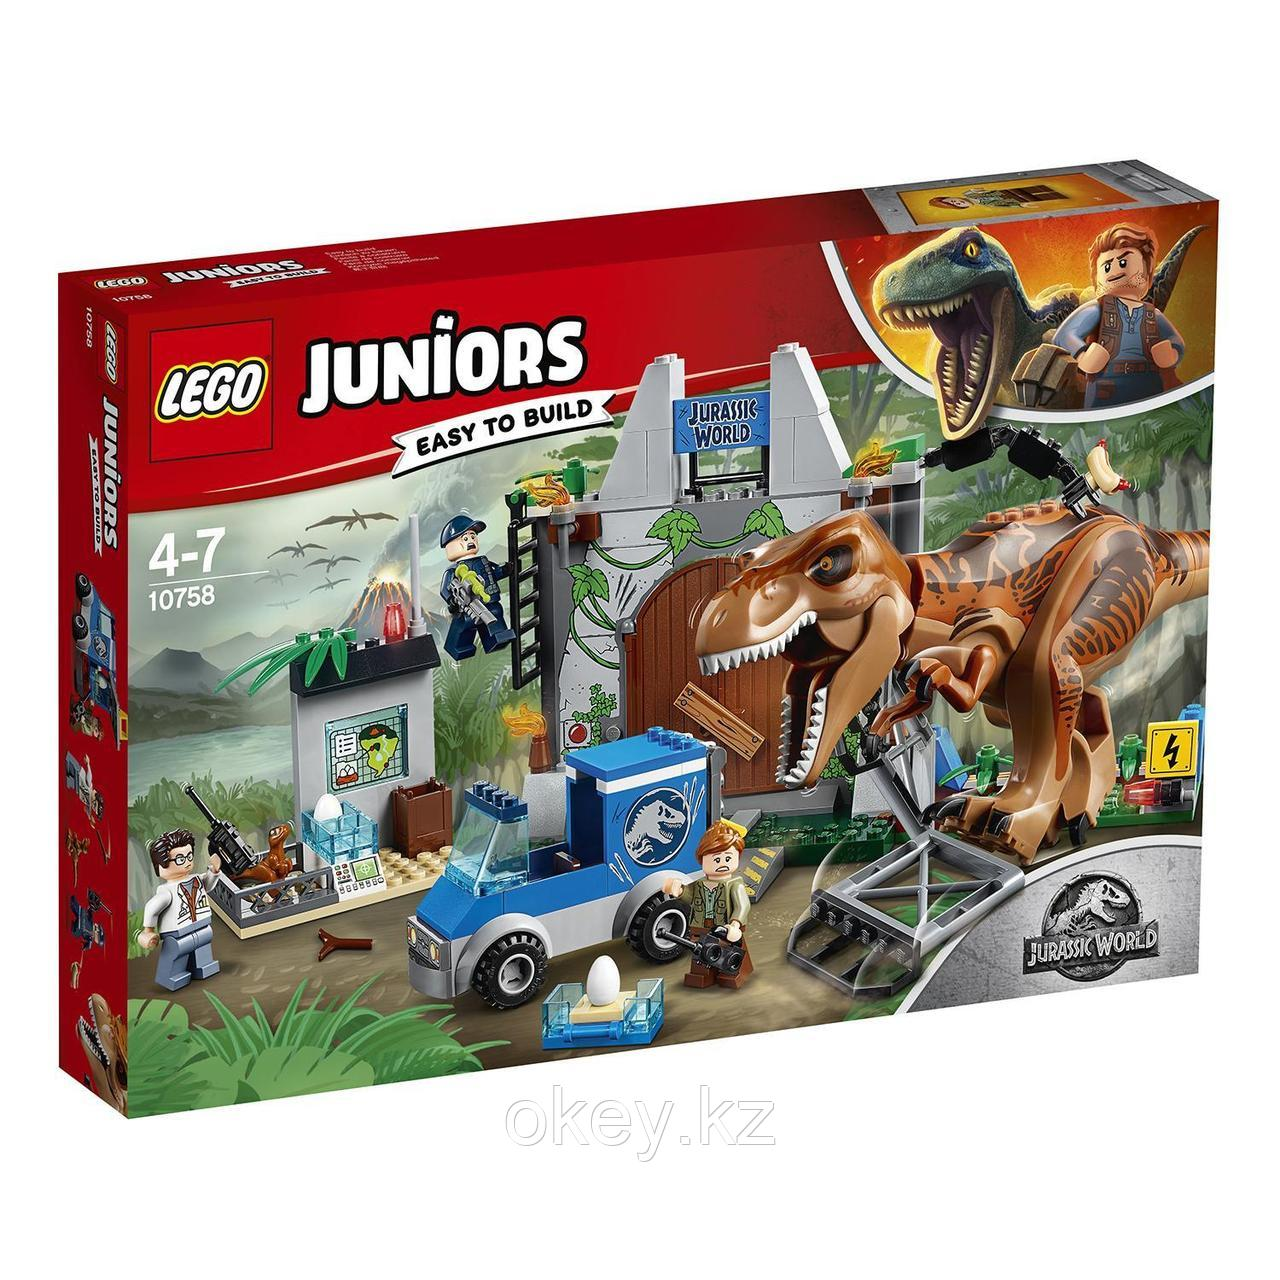 LEGO Juniors: Jurassic World — Побег ти-рекса 10758